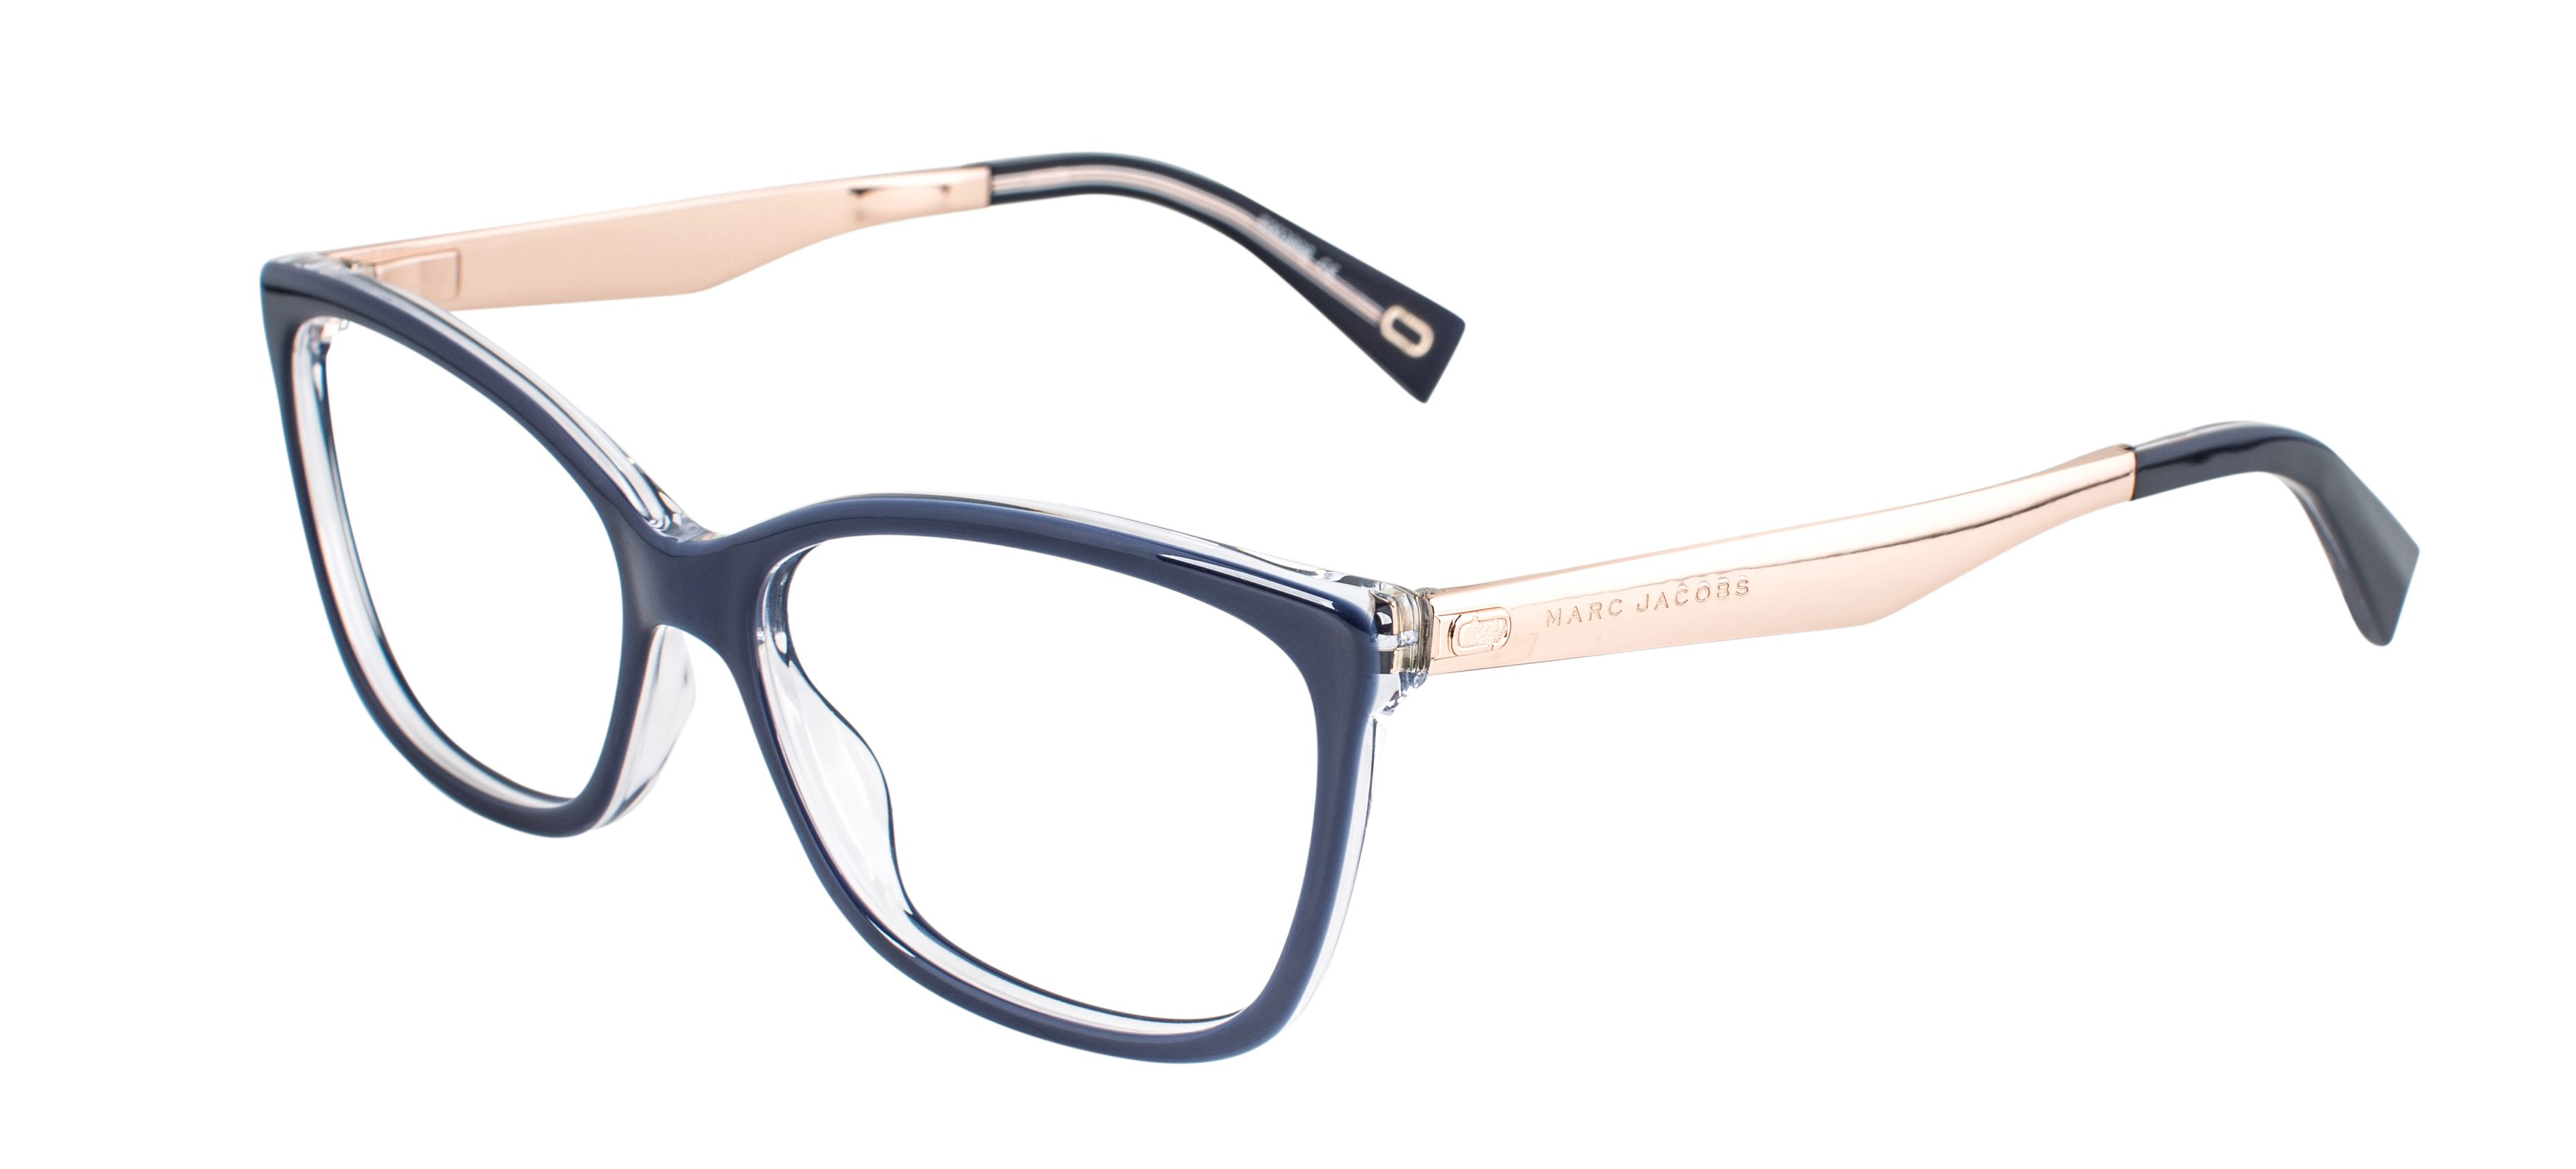 8f5a6cc43a71 MARC JACOBS 01. 30768628 2 pairs single vision  299